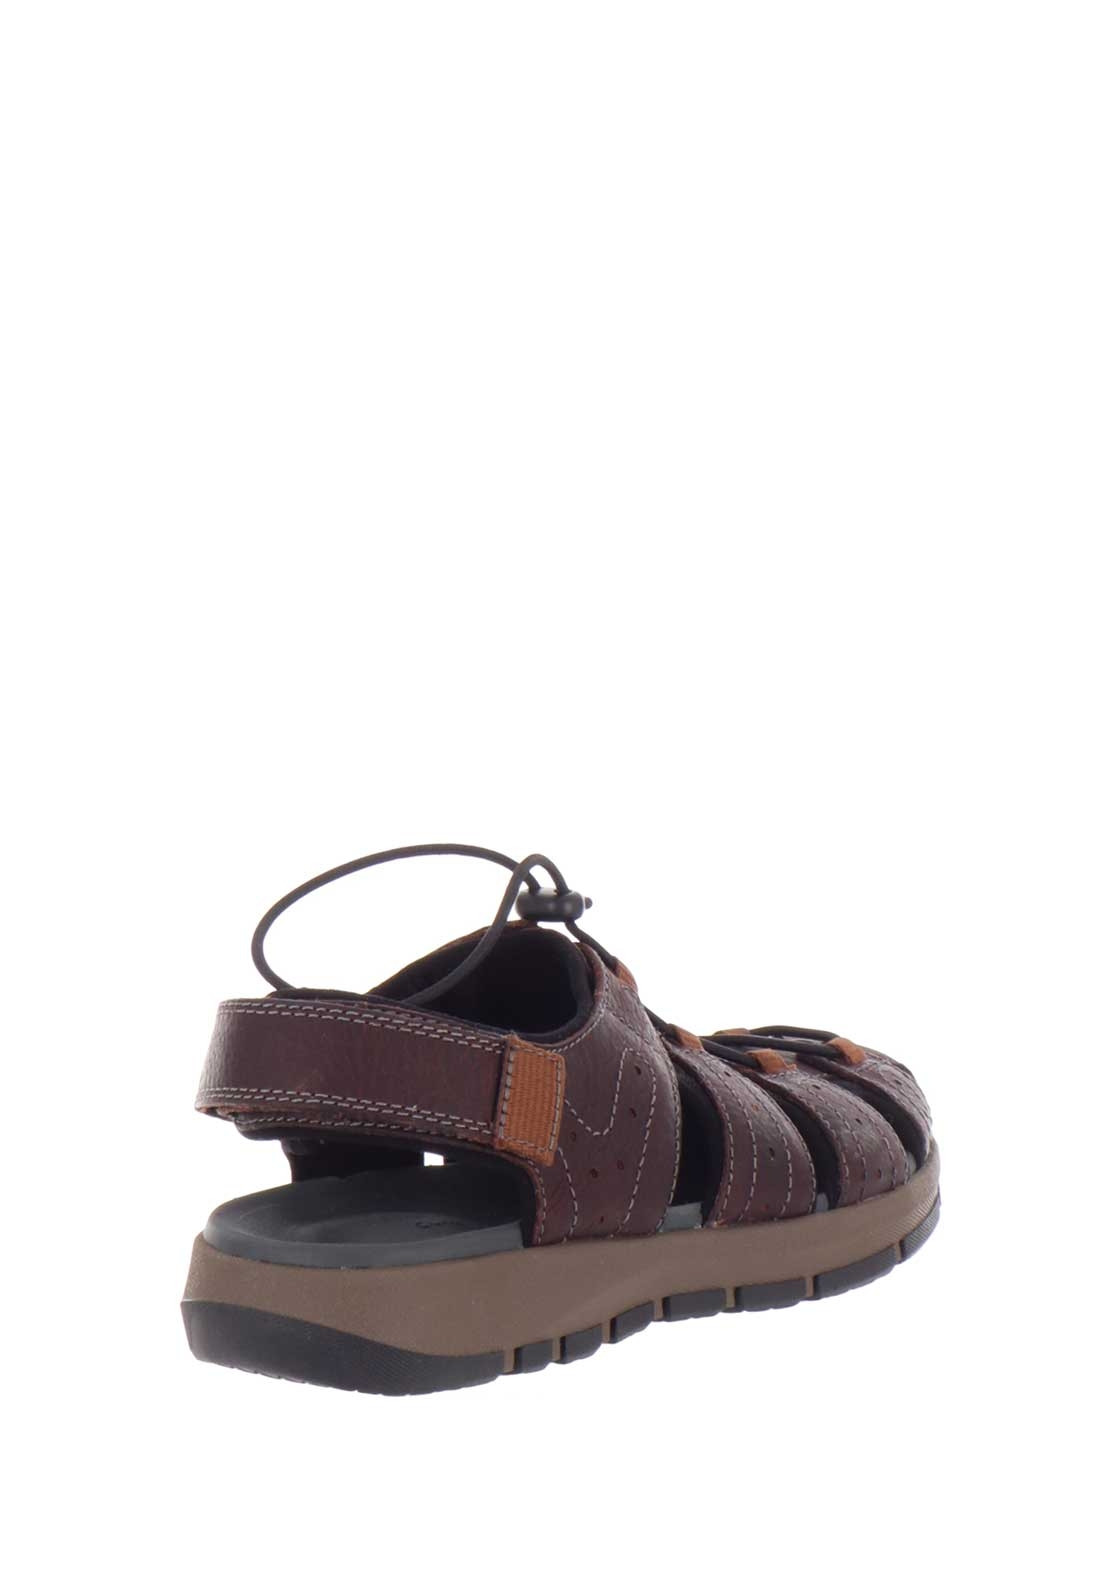 717350de919 Clarks Brixby Cove Men s Sandals